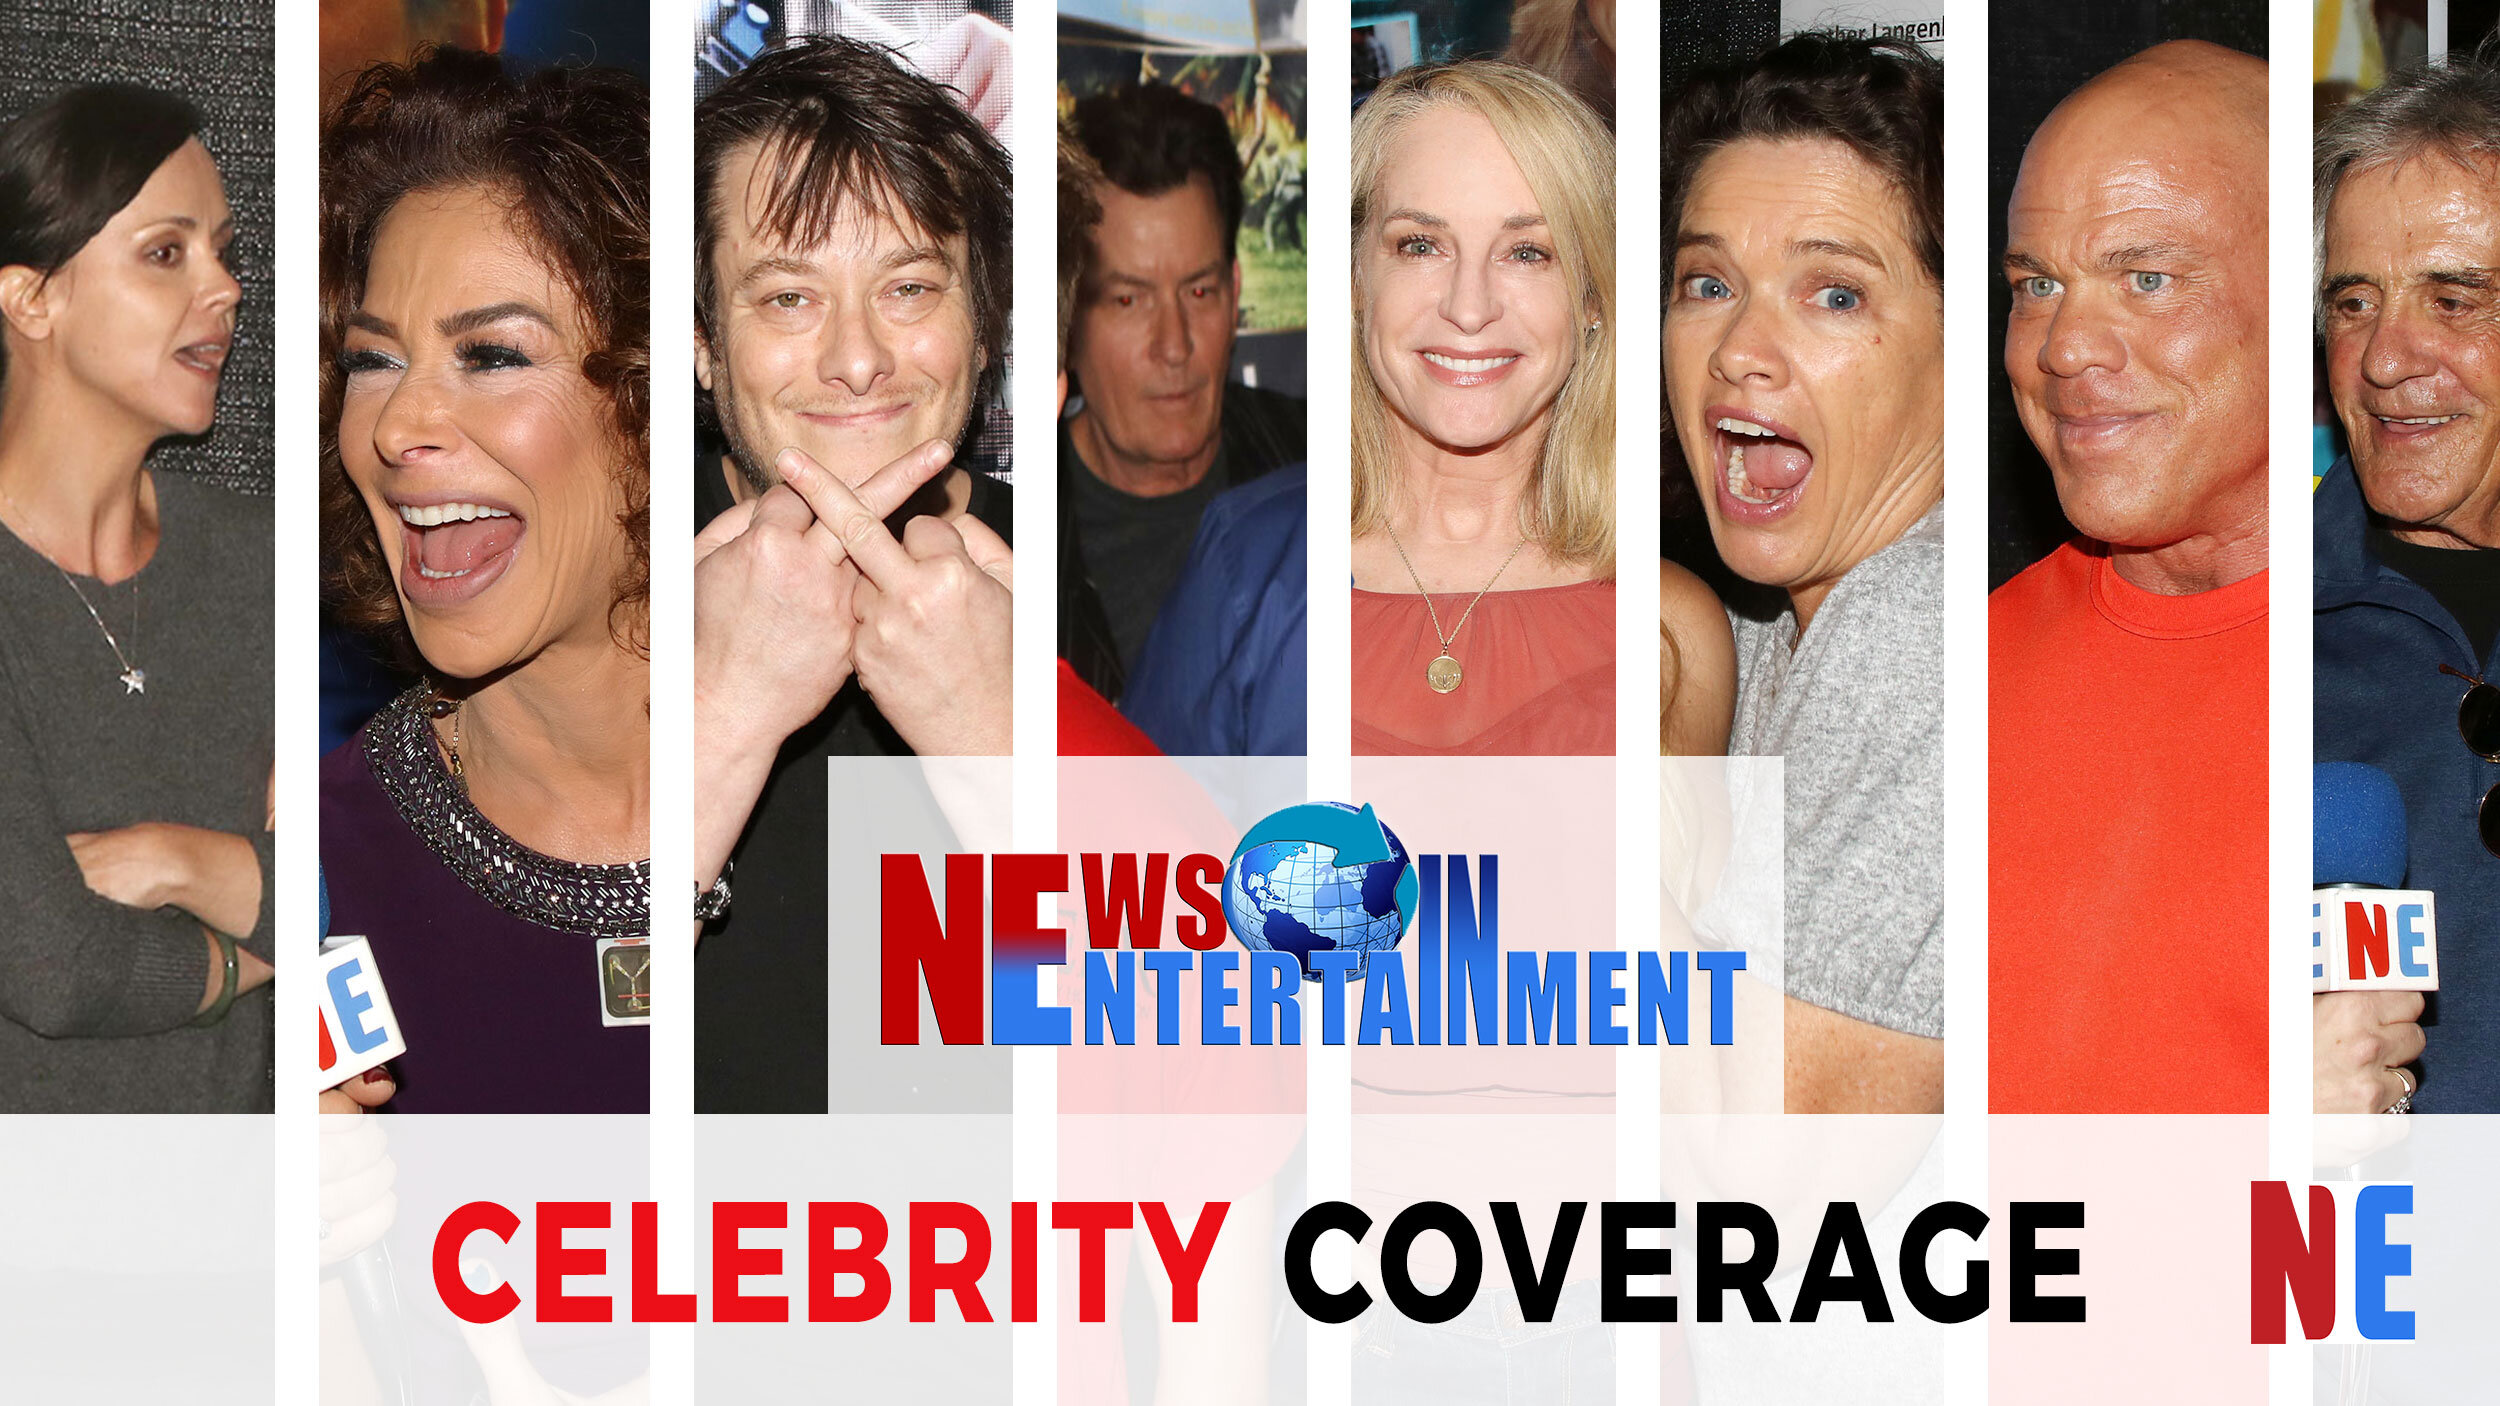 Celebrity-Coverage-ad-NJHCFF-NIE.jpg